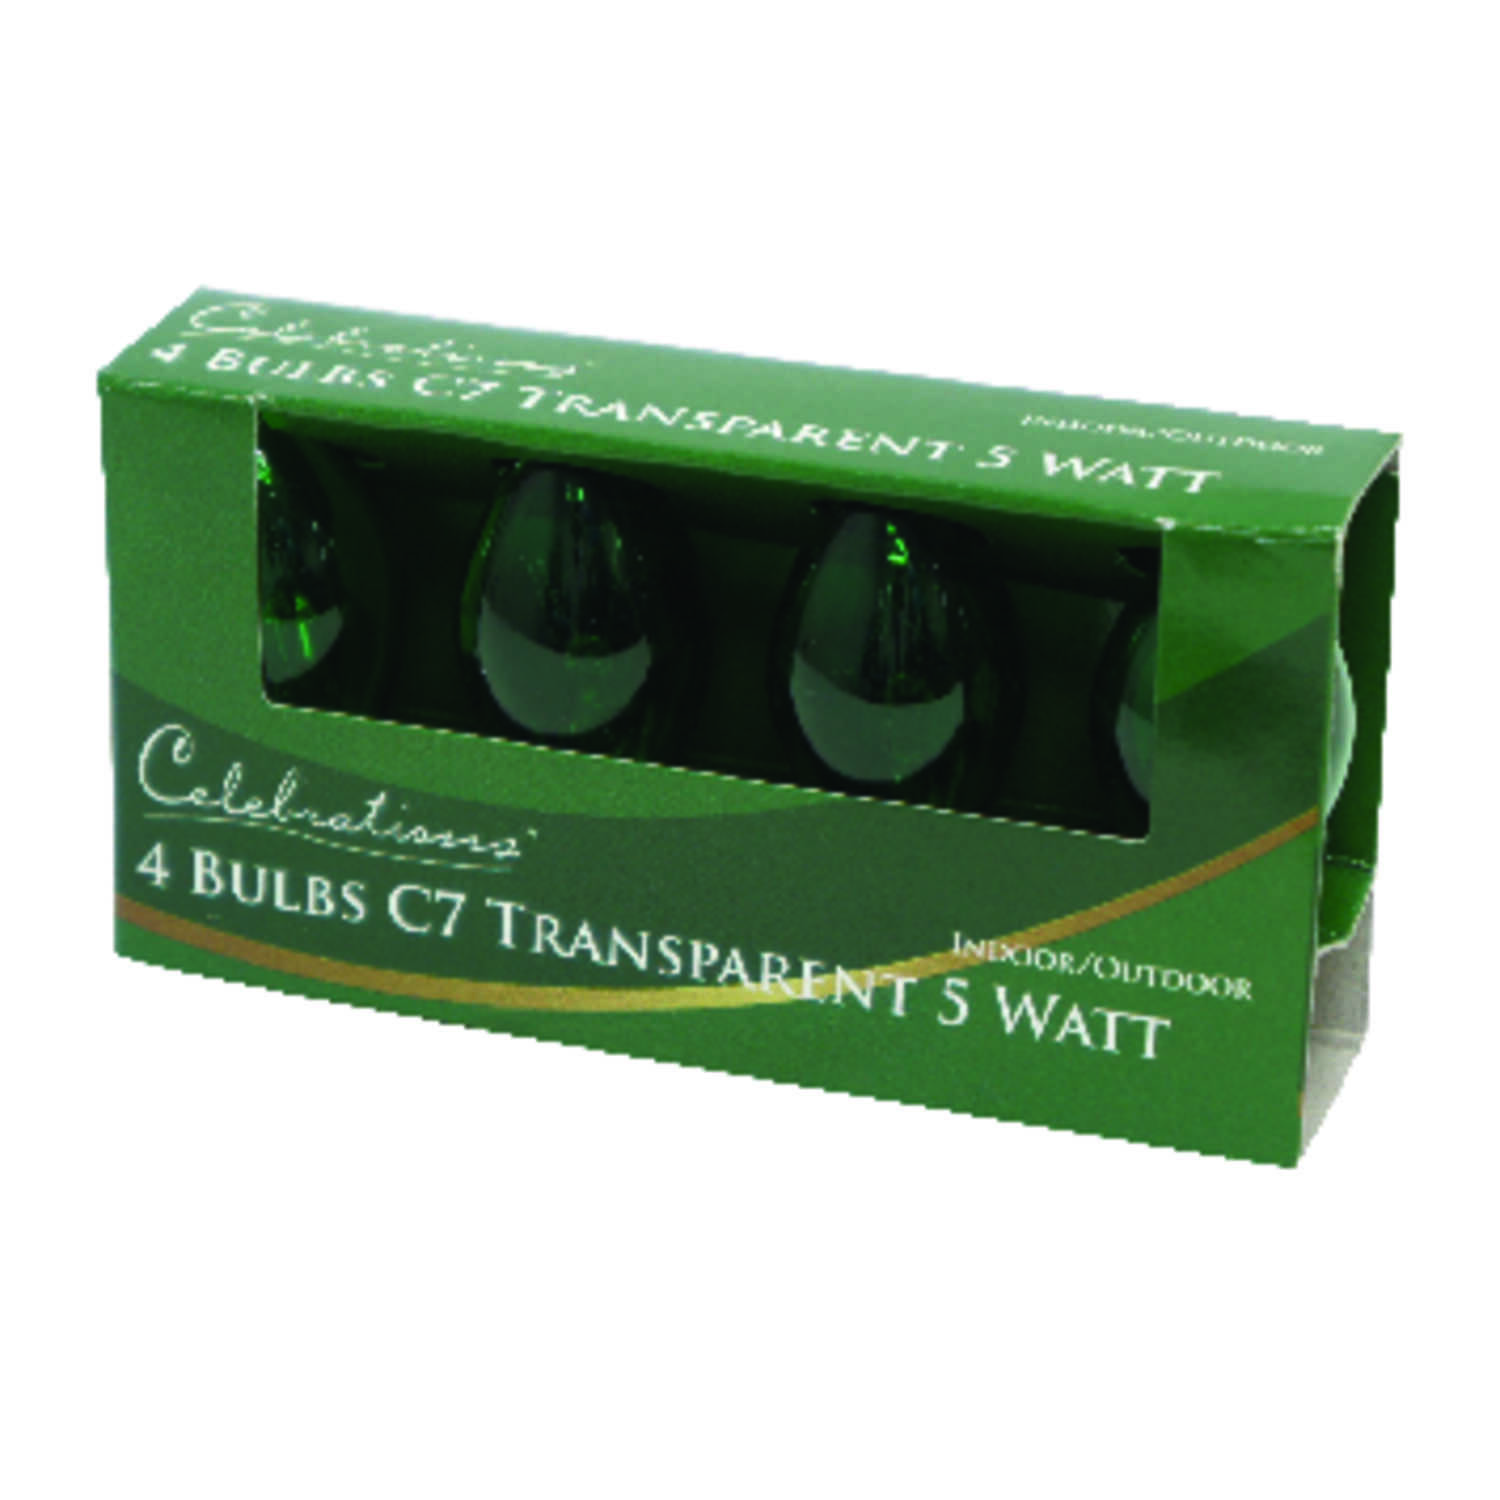 Celebrations  Incandescent  Transparent C7  Replacement Bulb  Green  4 lights